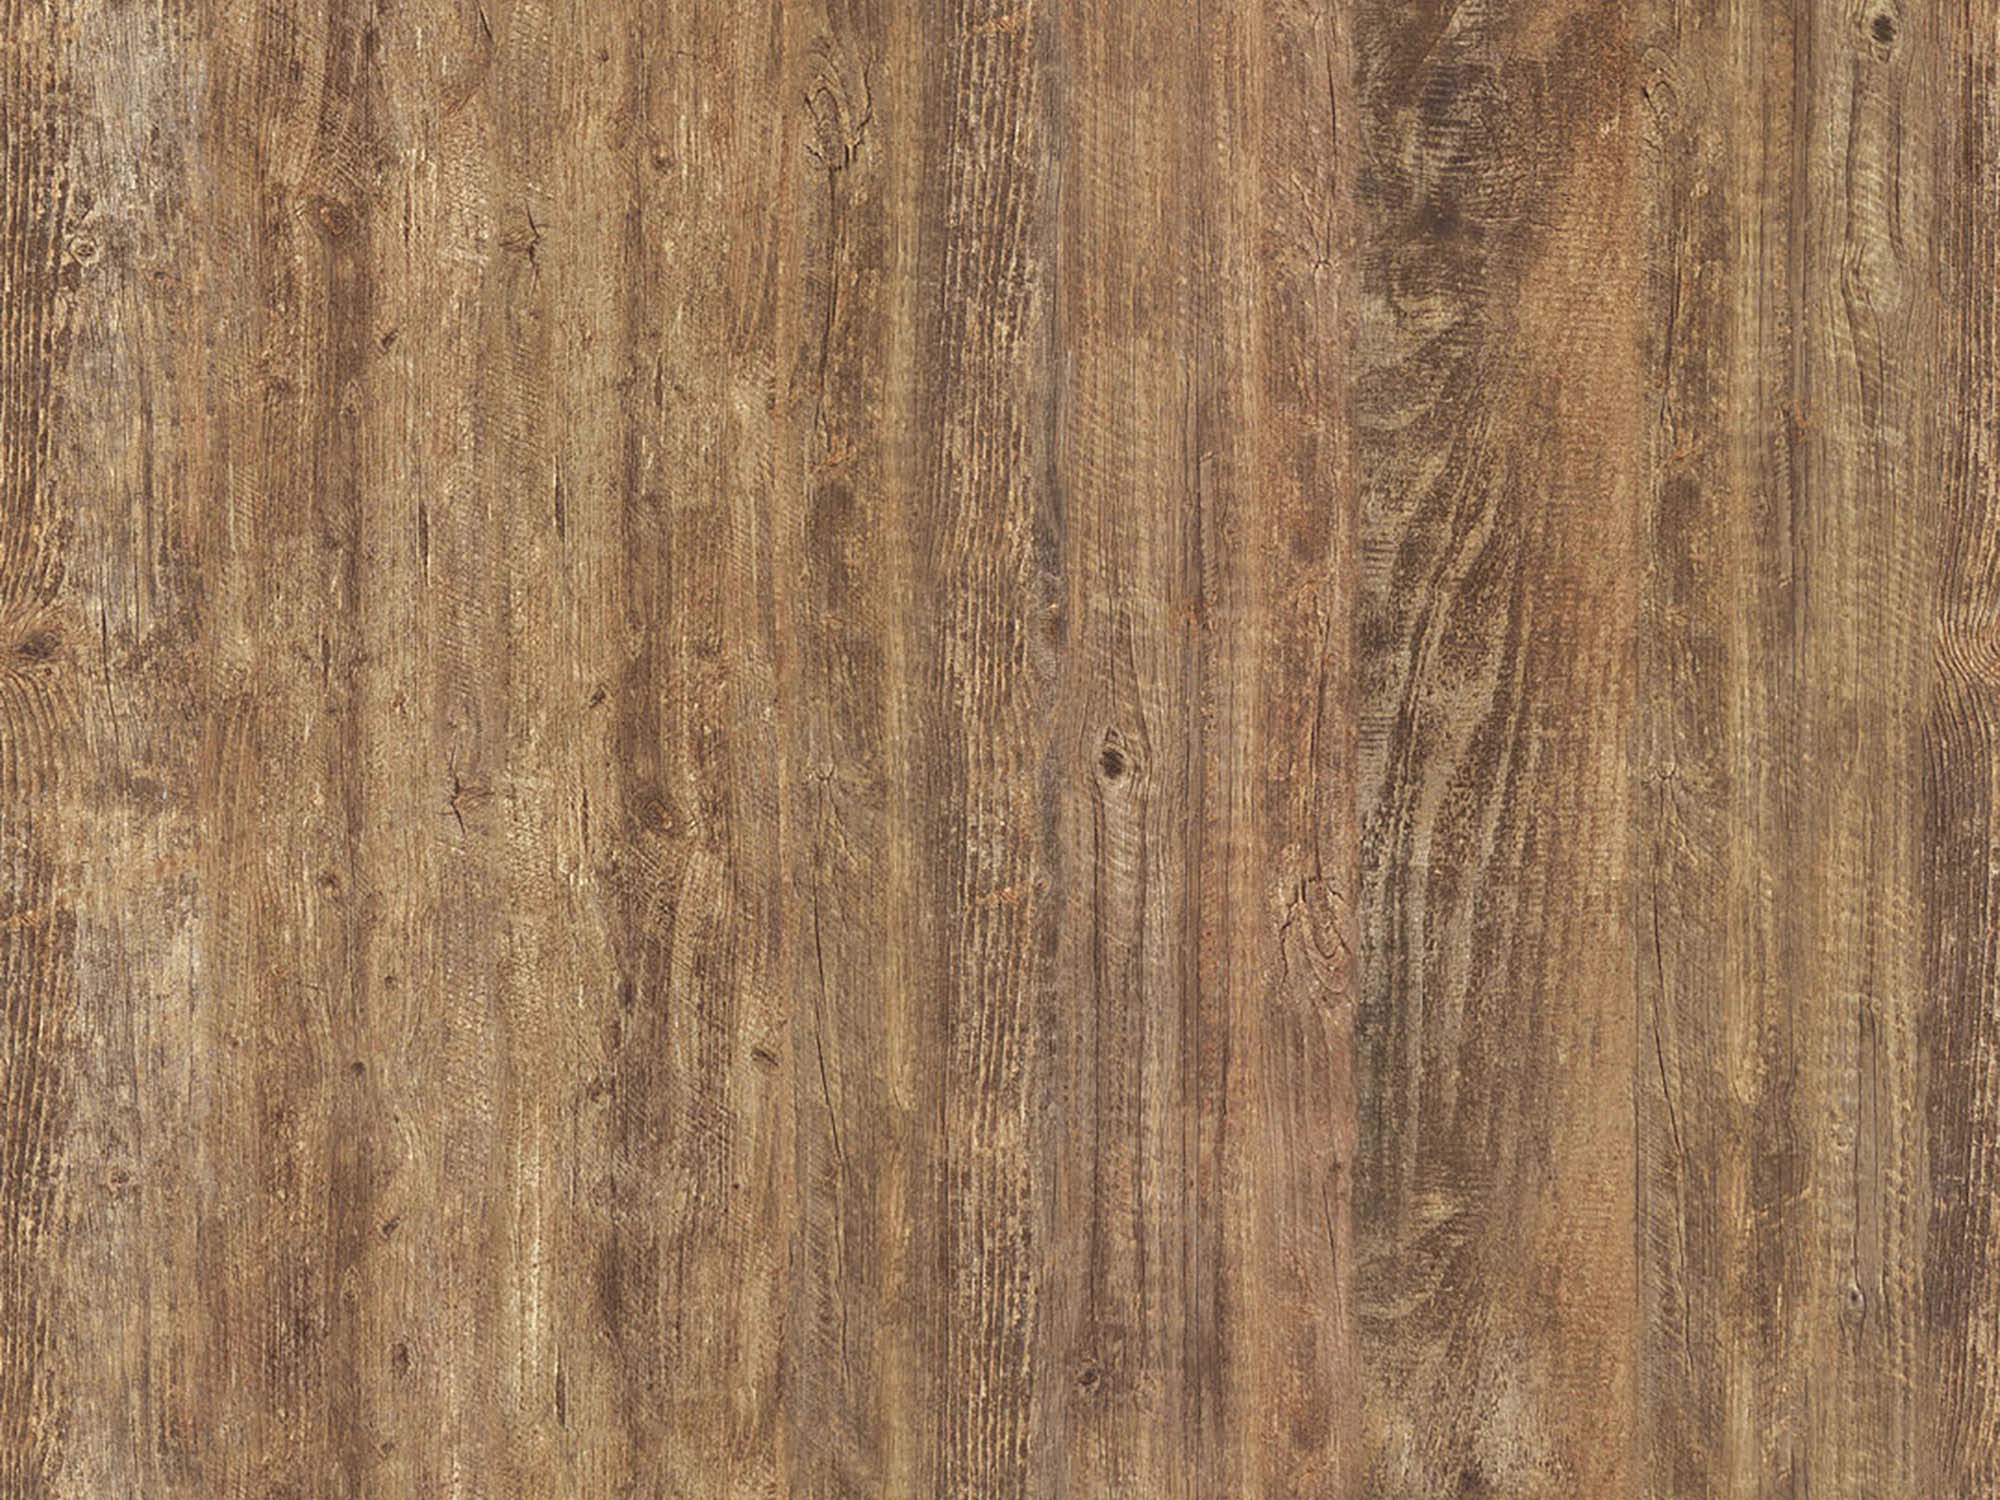 Seamless Wood Texture 5